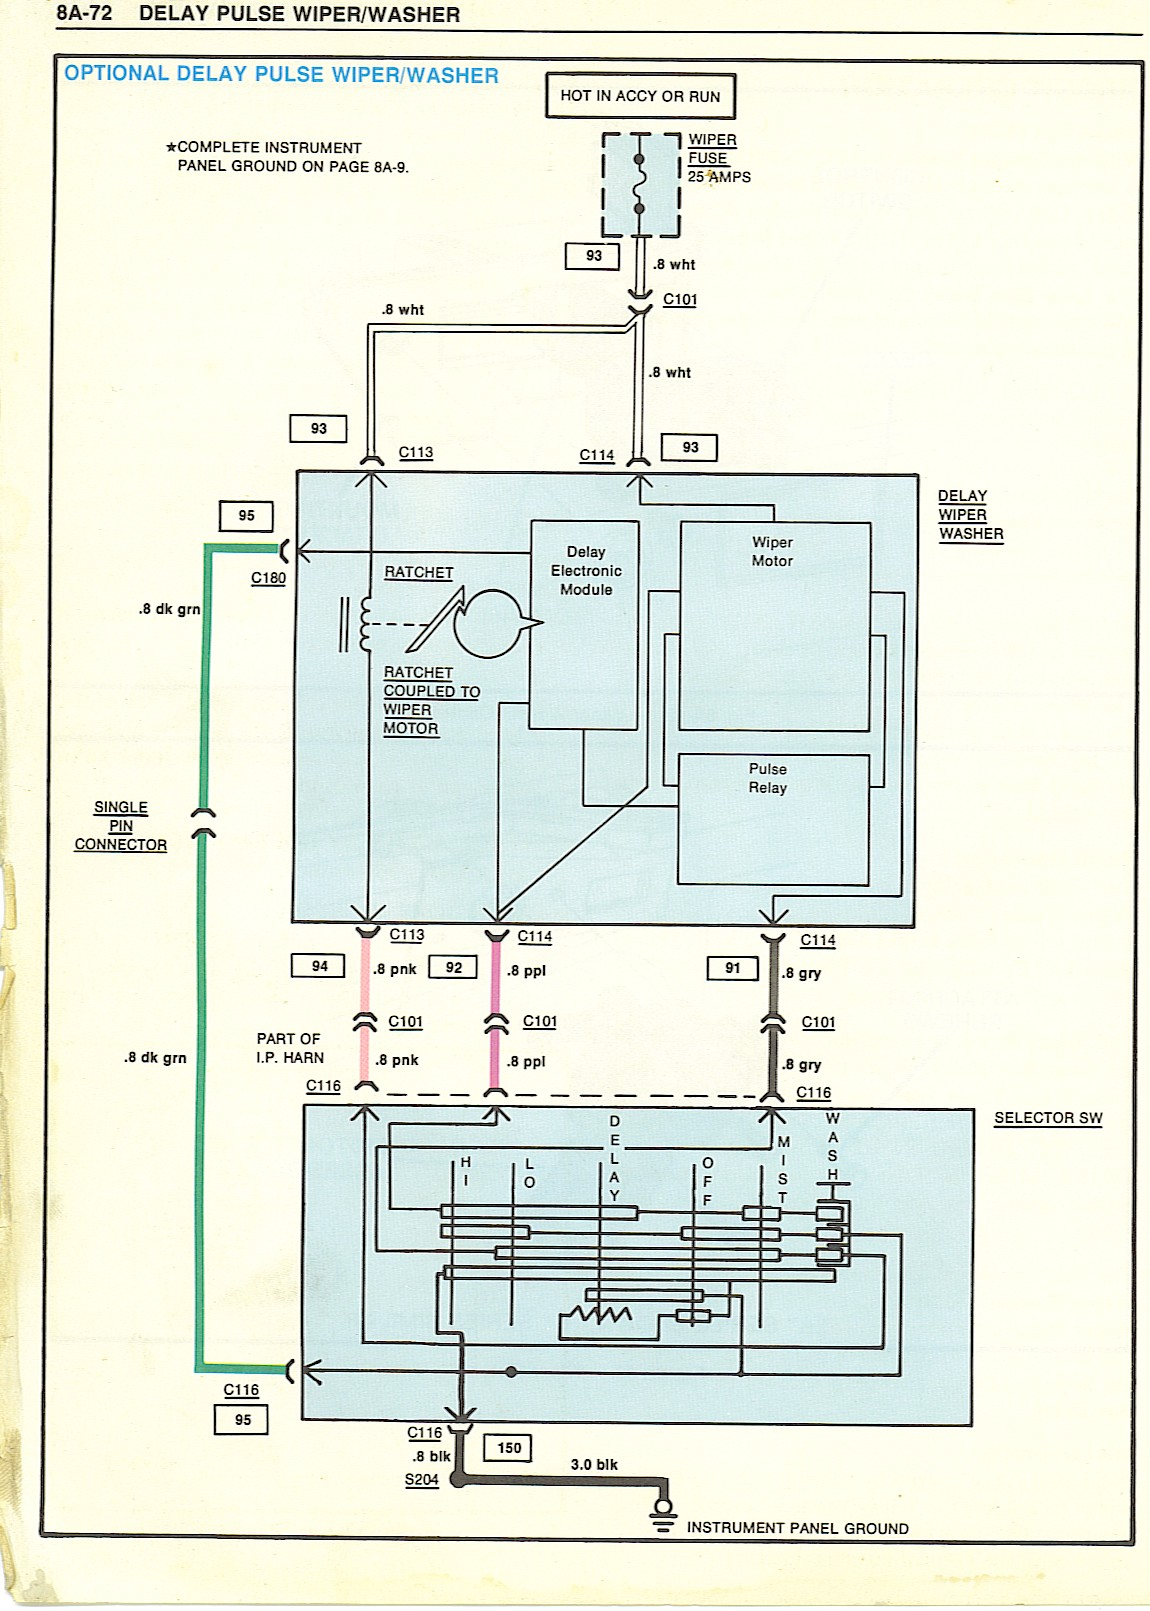 1987 el camino wiper wiring diagram BqlUvUp sterling truck wiring diagrams efcaviation com schematic wiring diagram 2000 sterling truck at honlapkeszites.co